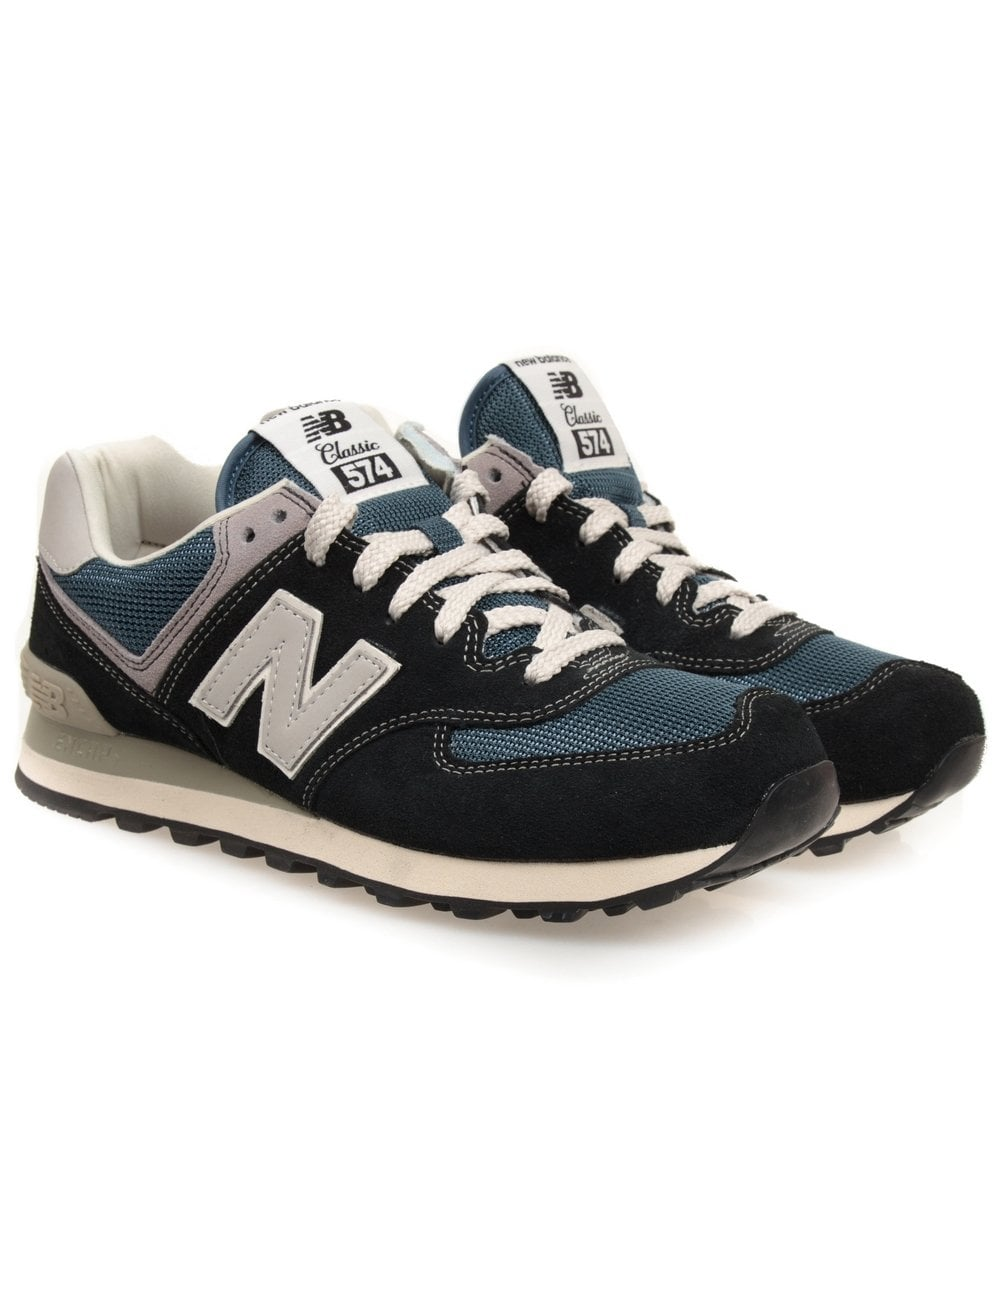 low priced b4b31 b2710 New Balance ML574DNA Trainers - Navy - Footwear from Fat Buddha Store UK